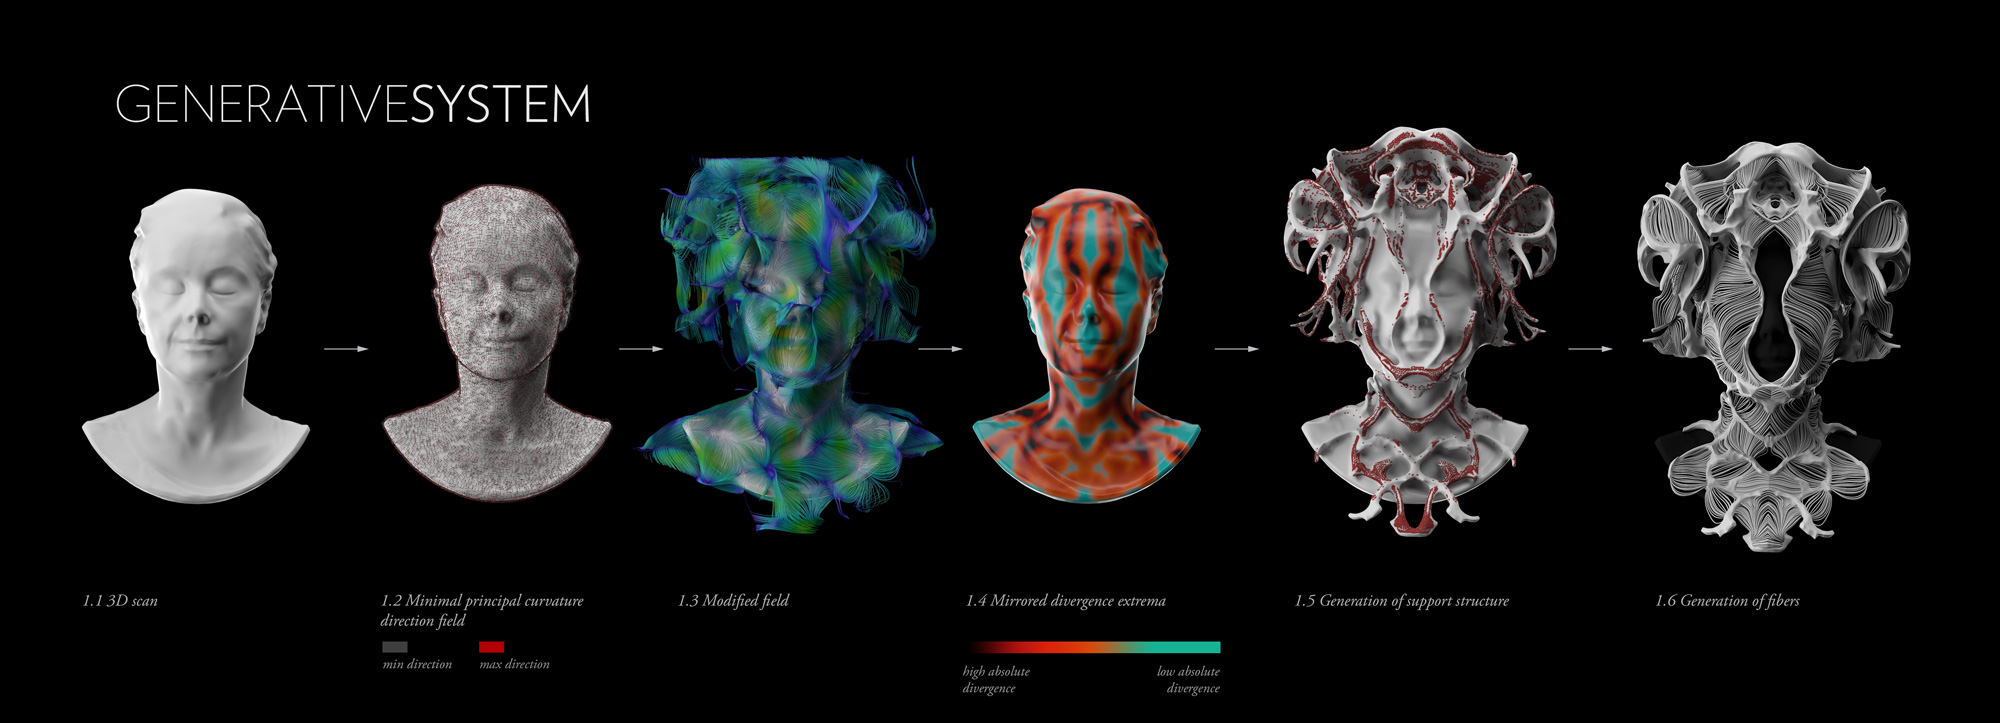 Fig. 3. The 3D scan executed by Blair Simmons and editted by Taylor Absher can be seen on the far left. Image courtesy  MIT Mediated Matter .